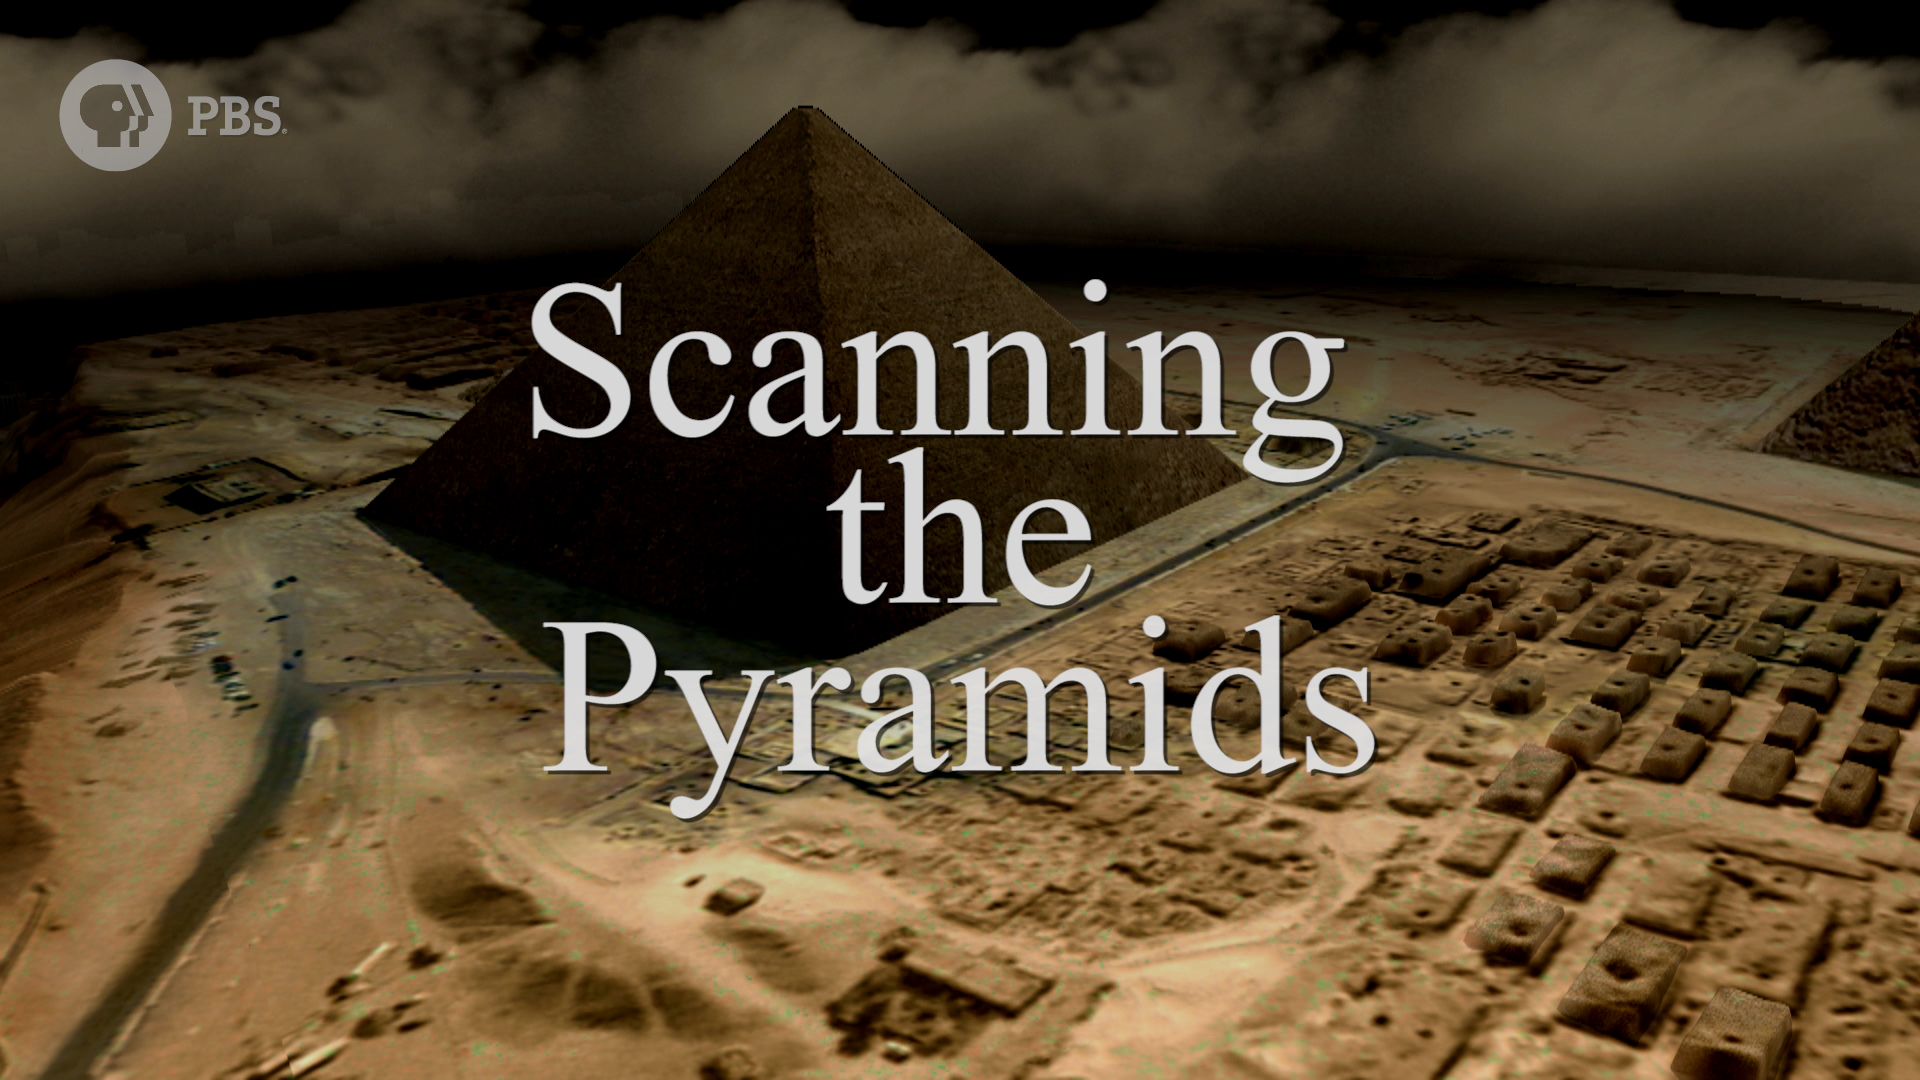 Scanning the Pyramids | Full Episode | Secrets of the Dead | PBS